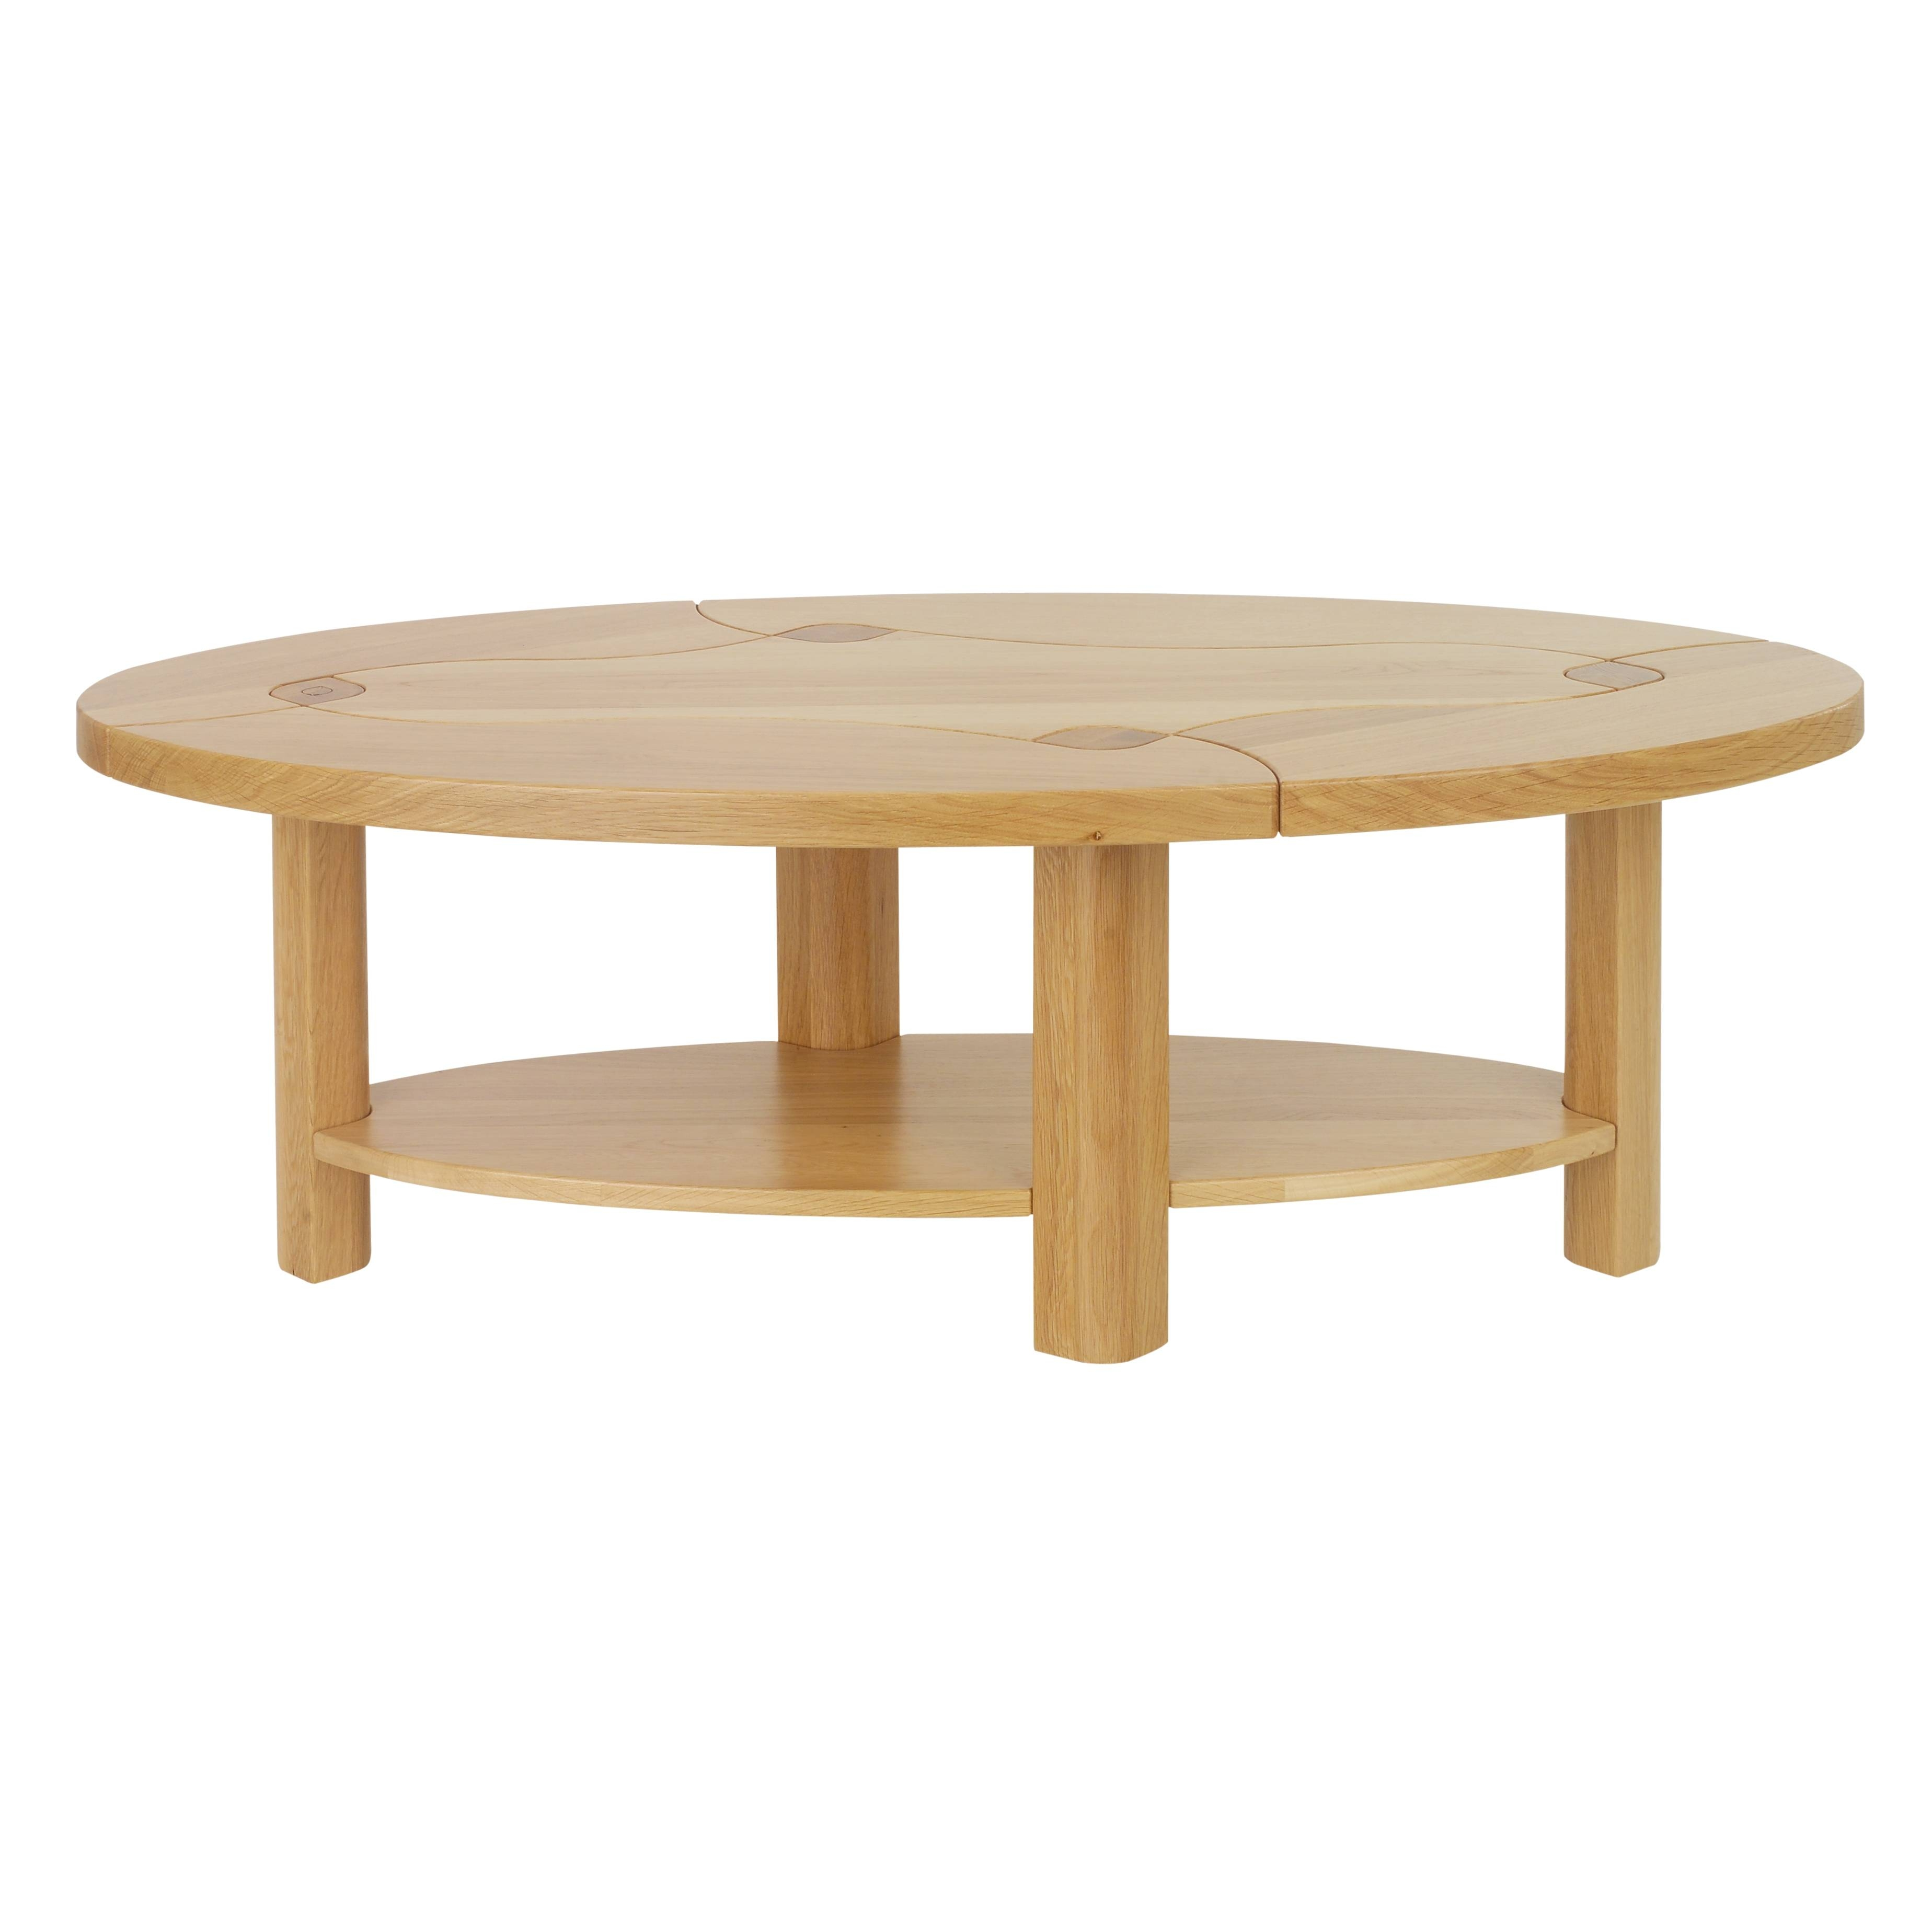 Furniture: Creative Minimalist Small Oval Coffee Table For Living For Square Wooden Coffee Tables (View 15 of 30)